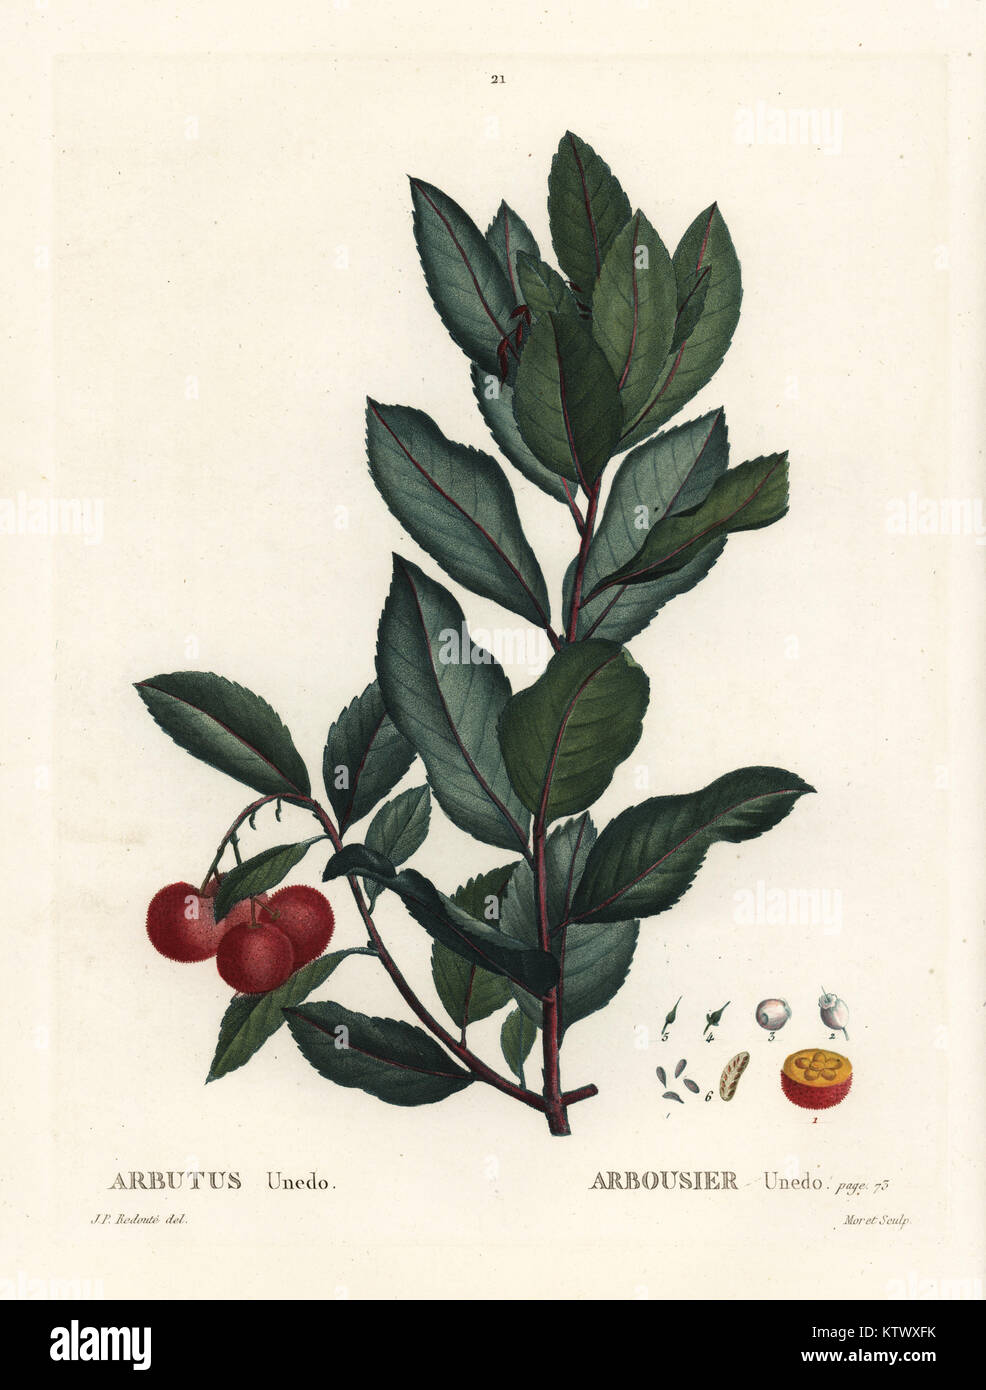 Strawberry tree, Arbutus unedo. Handcoloured stipple engraving by  after an illustration by Pierre-Joseph Redoute - Stock Image